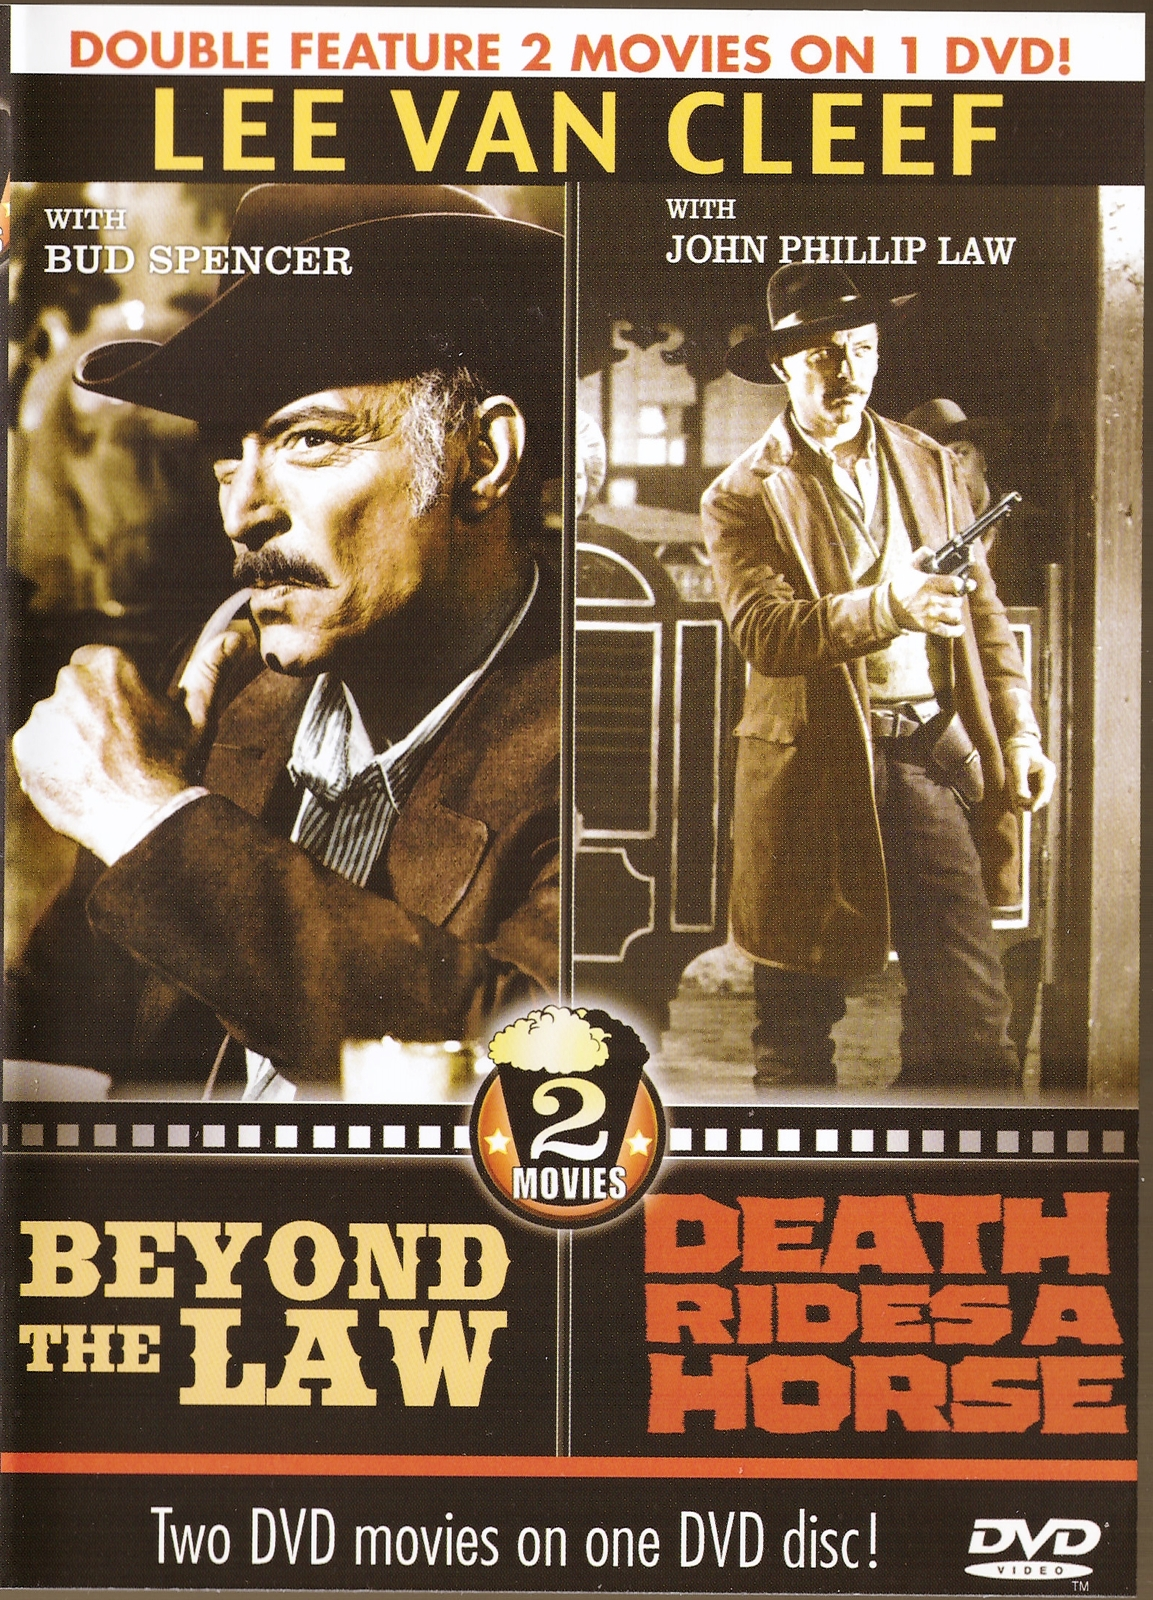 Beyond the law  death rides a horse dvd double feature lee van cleef western  1